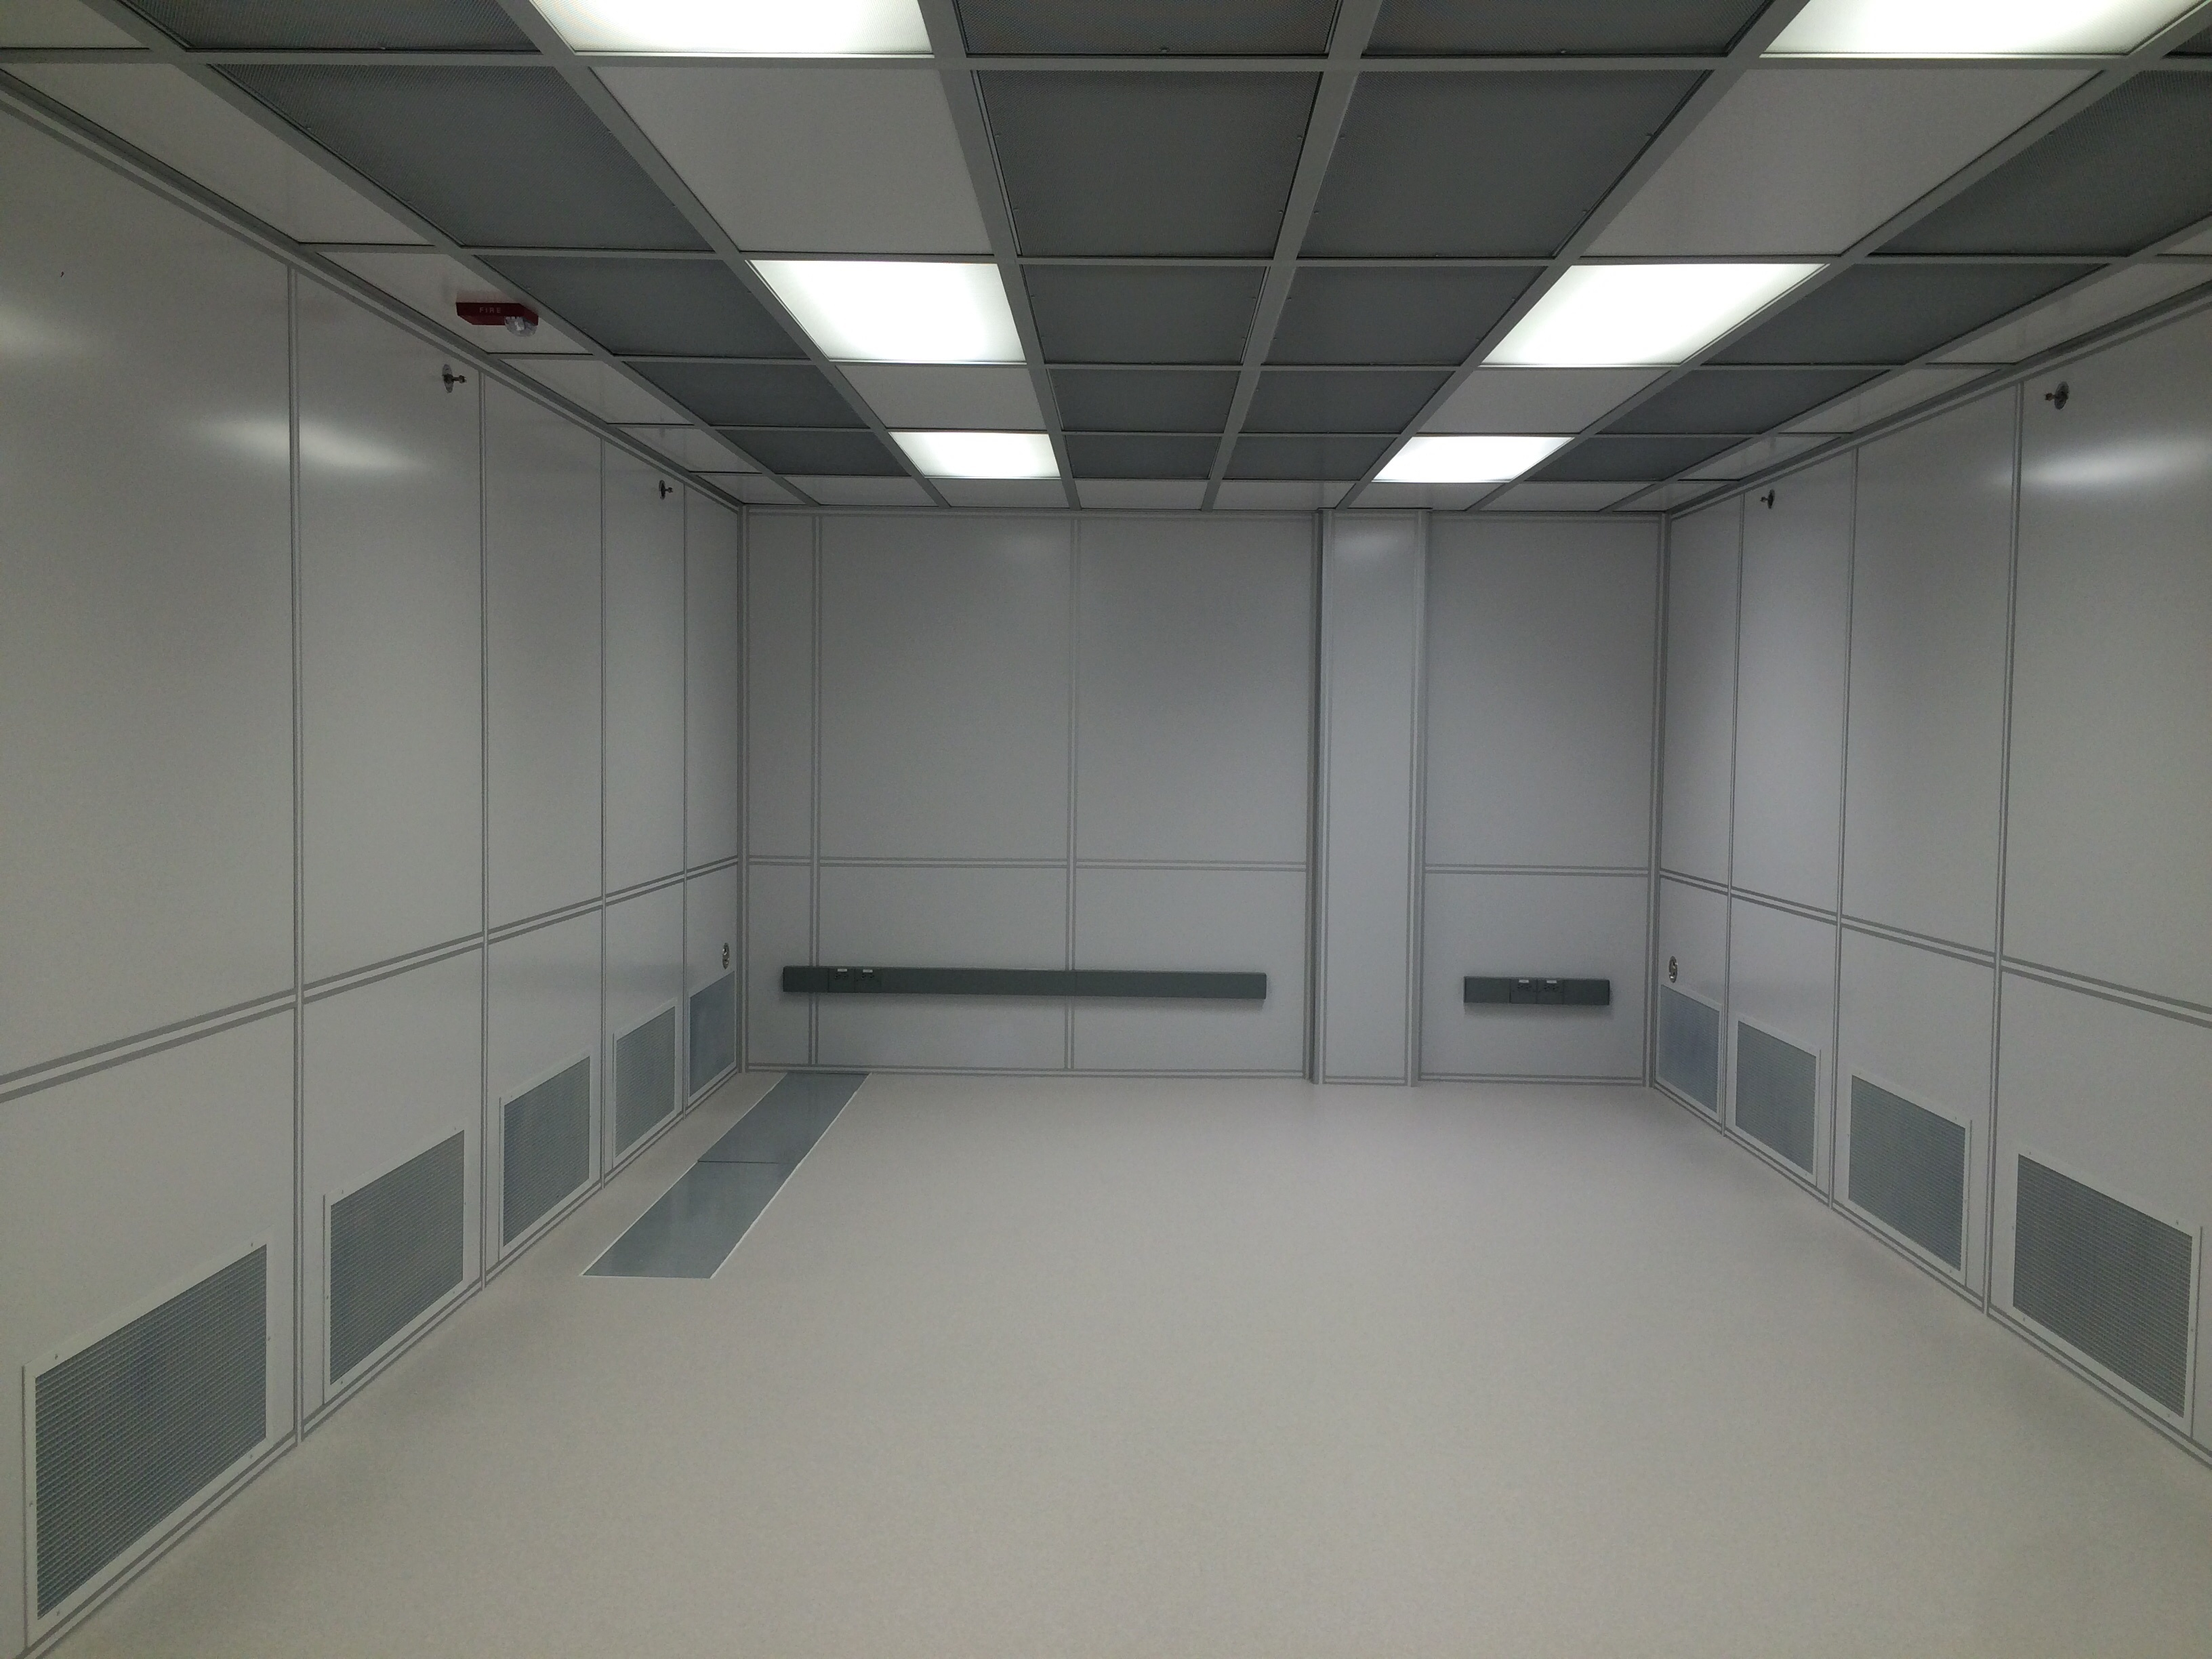 cleanroom interior